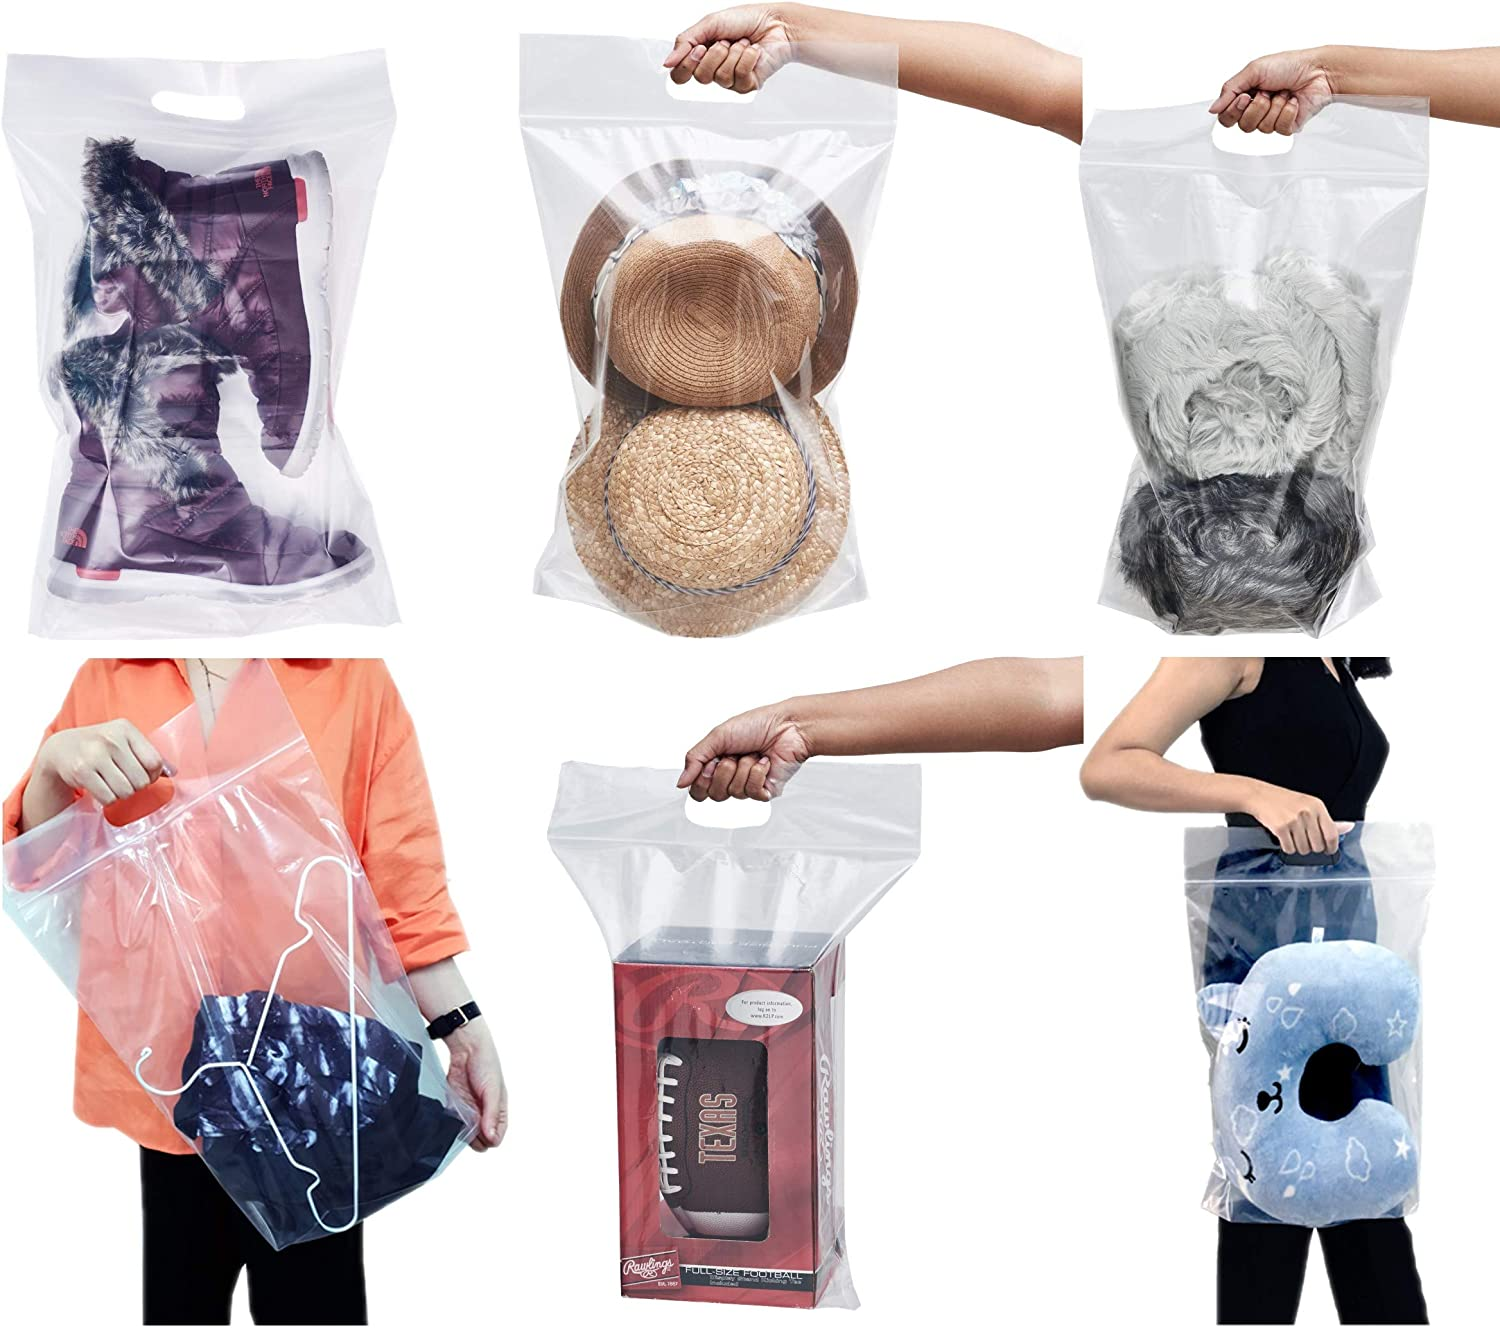 12 pieces of Zipper Heavy duty Clear Plastic Poly Bags Resealable Storage Shoes, Boot, Clothing, Linens, Books, Toys and others, a pleated expandable bottom. (Boot & Utilities Bags)